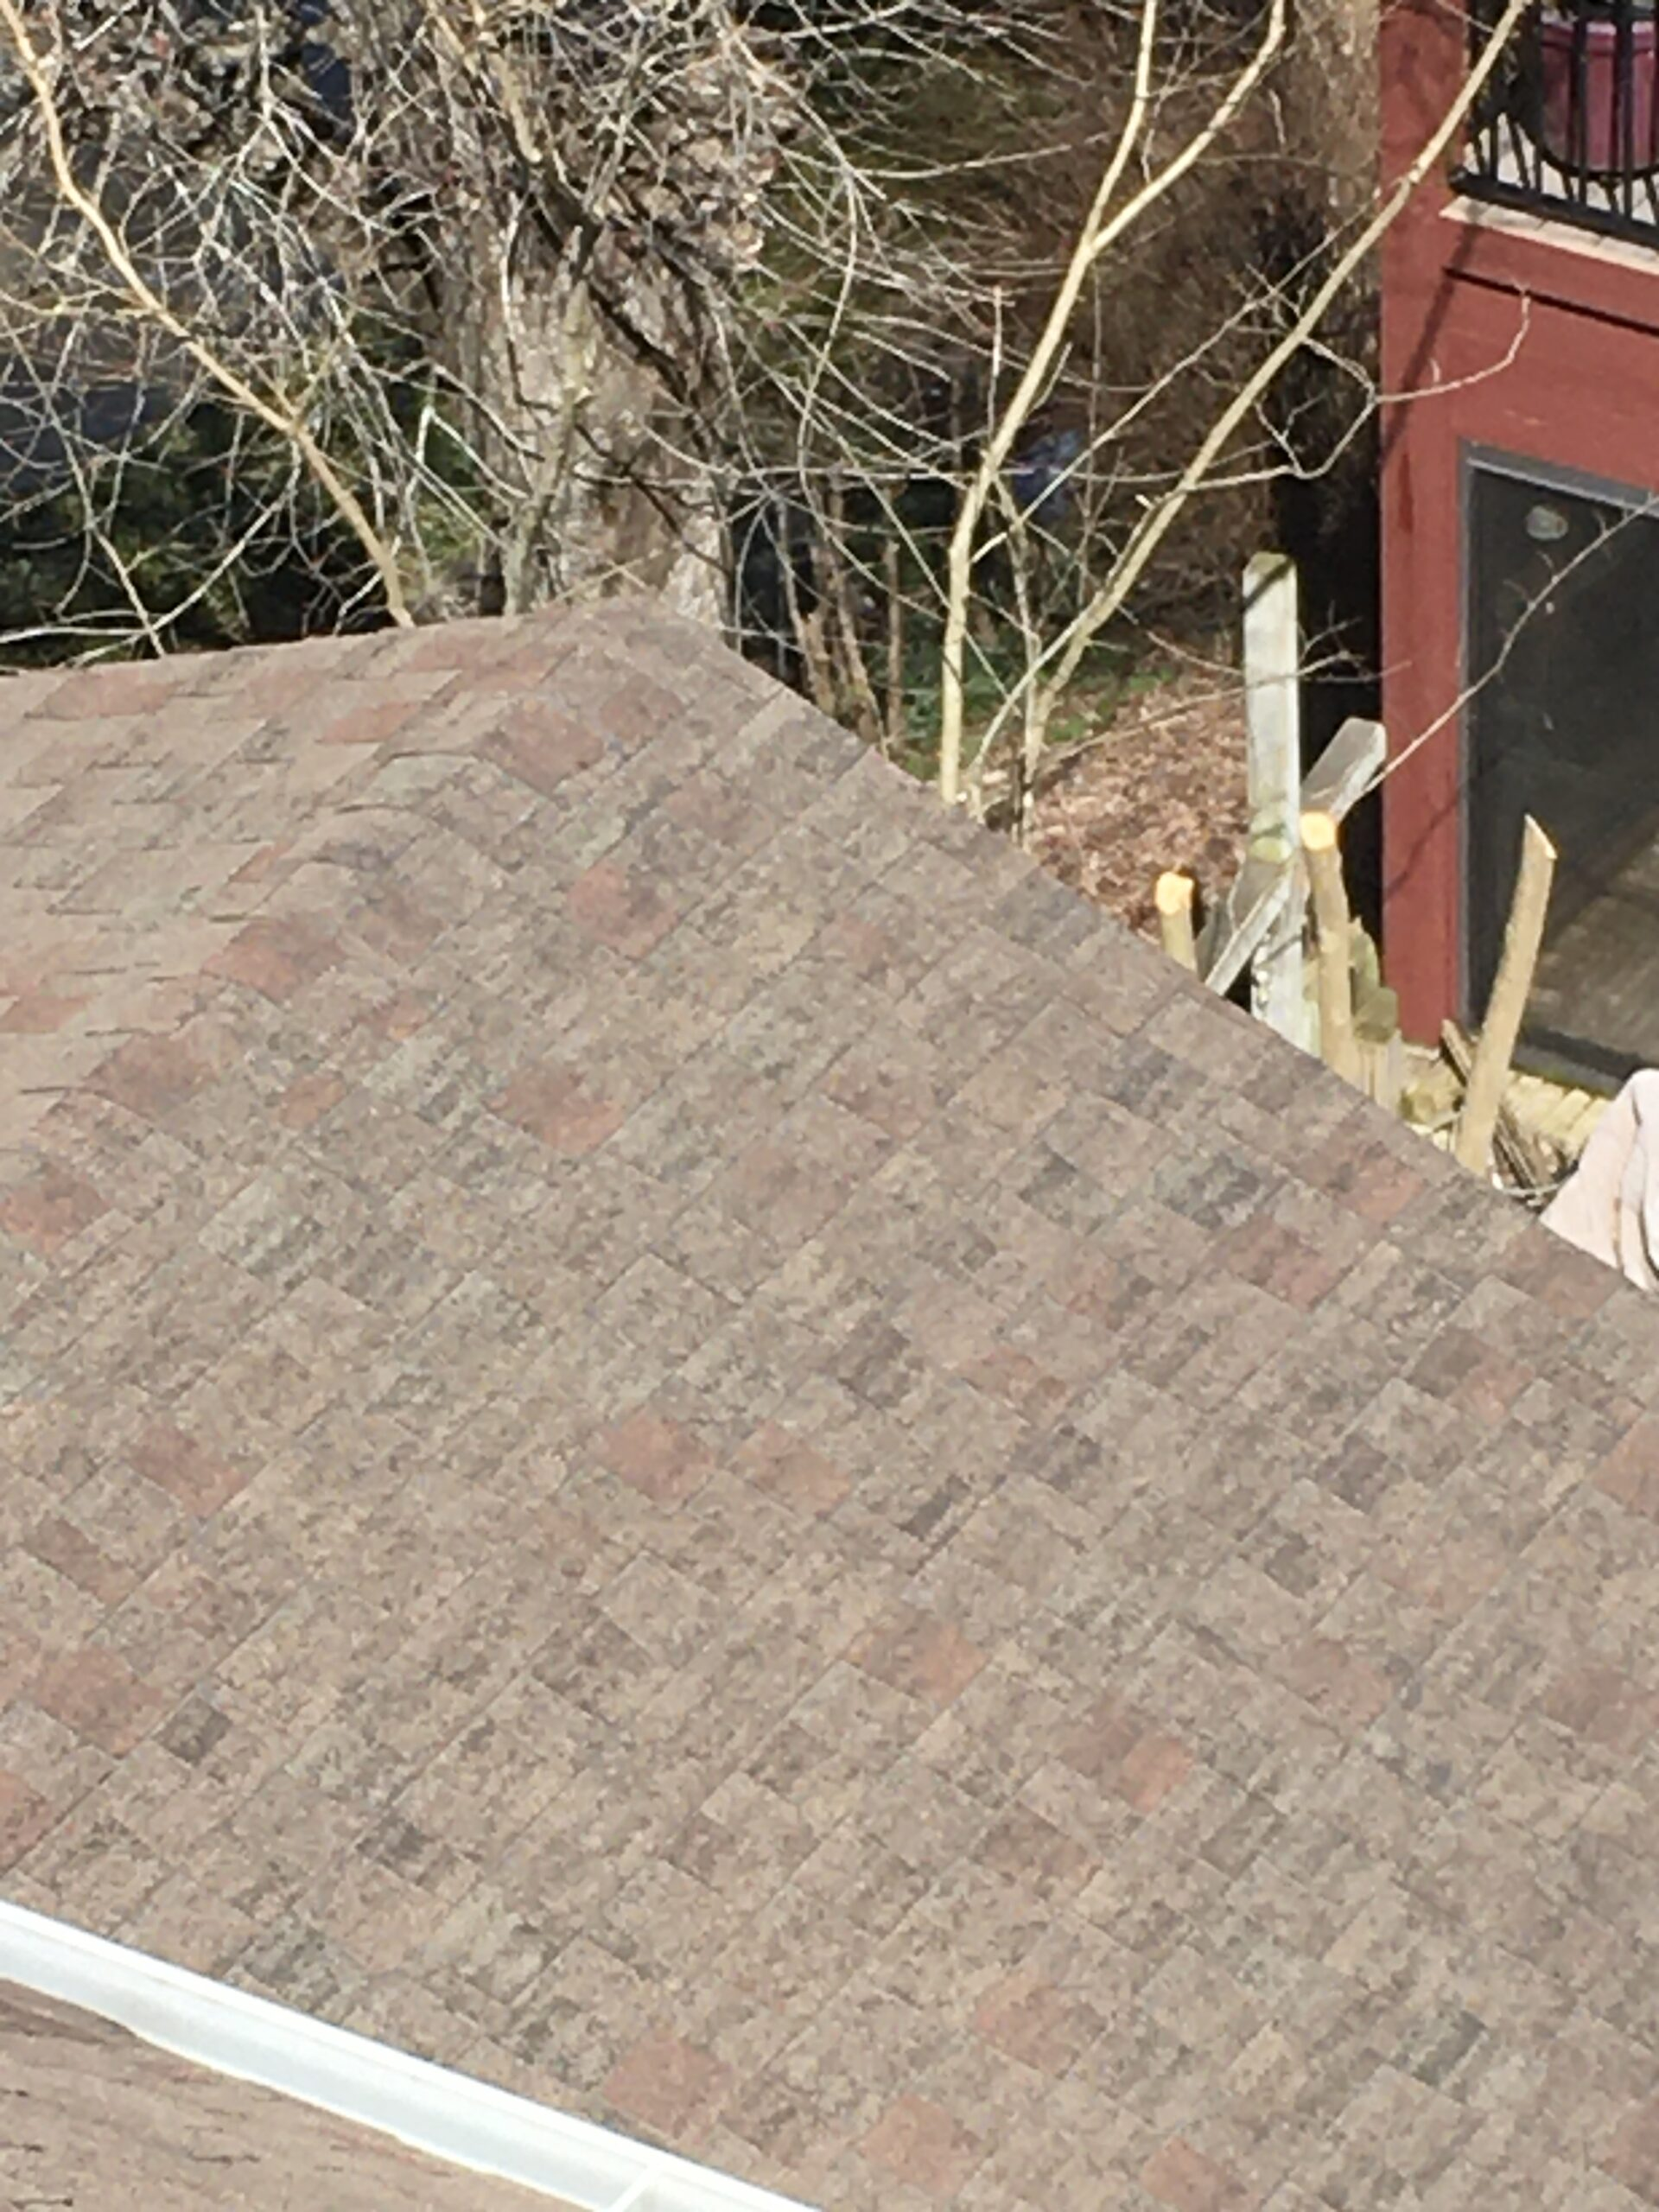 This is a worn out brown shingle